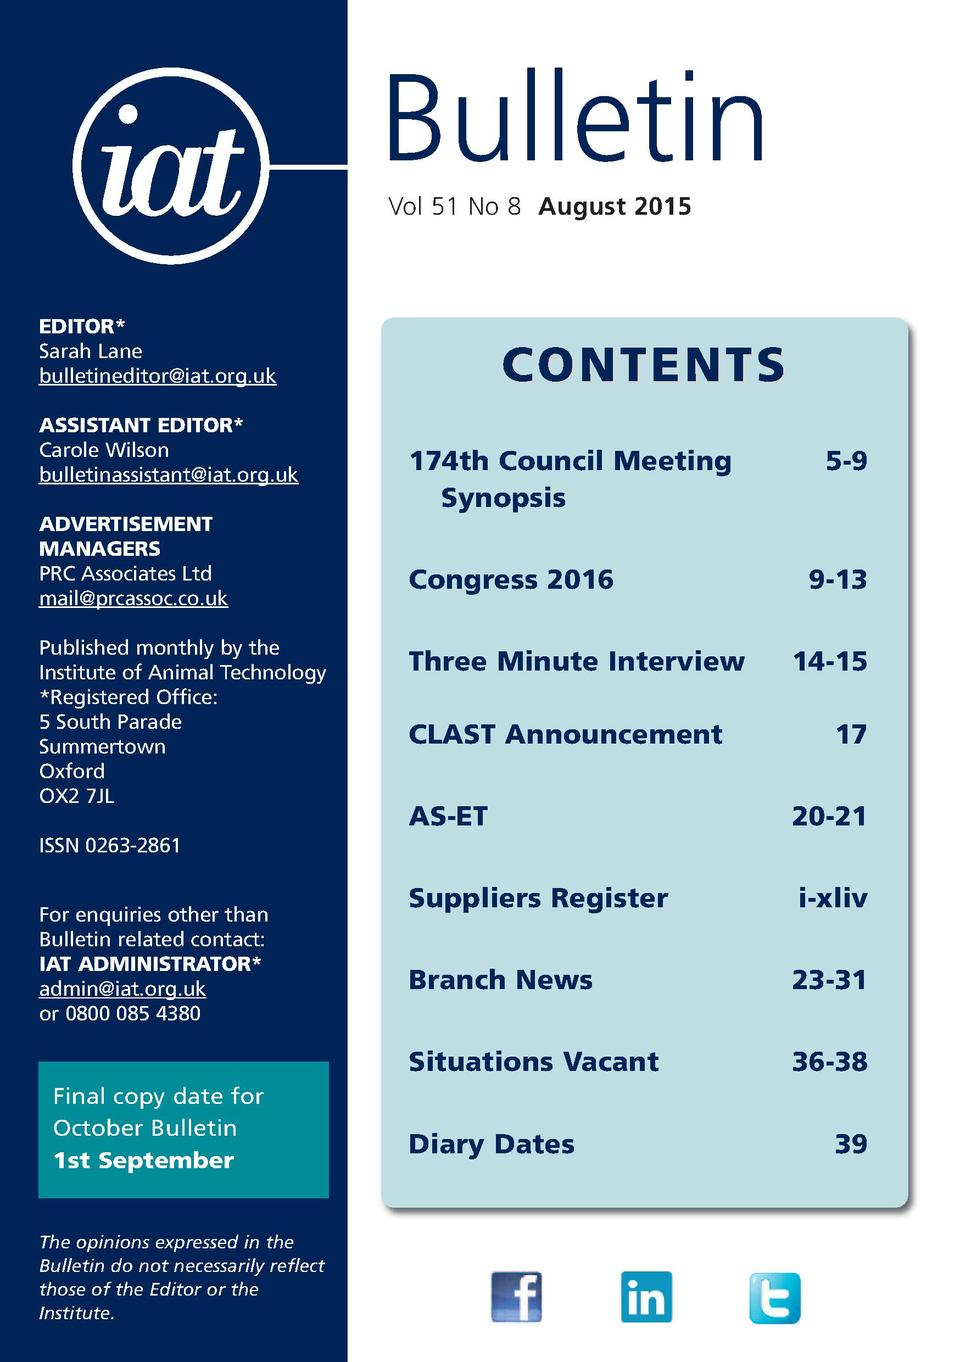 Bulletin Vol 51 No 8 August 2015  EDITOR  Sarah Lane bulletineditor iat.org.uk ASSISTANT EDITOR  Carole Wilson bulletinass...